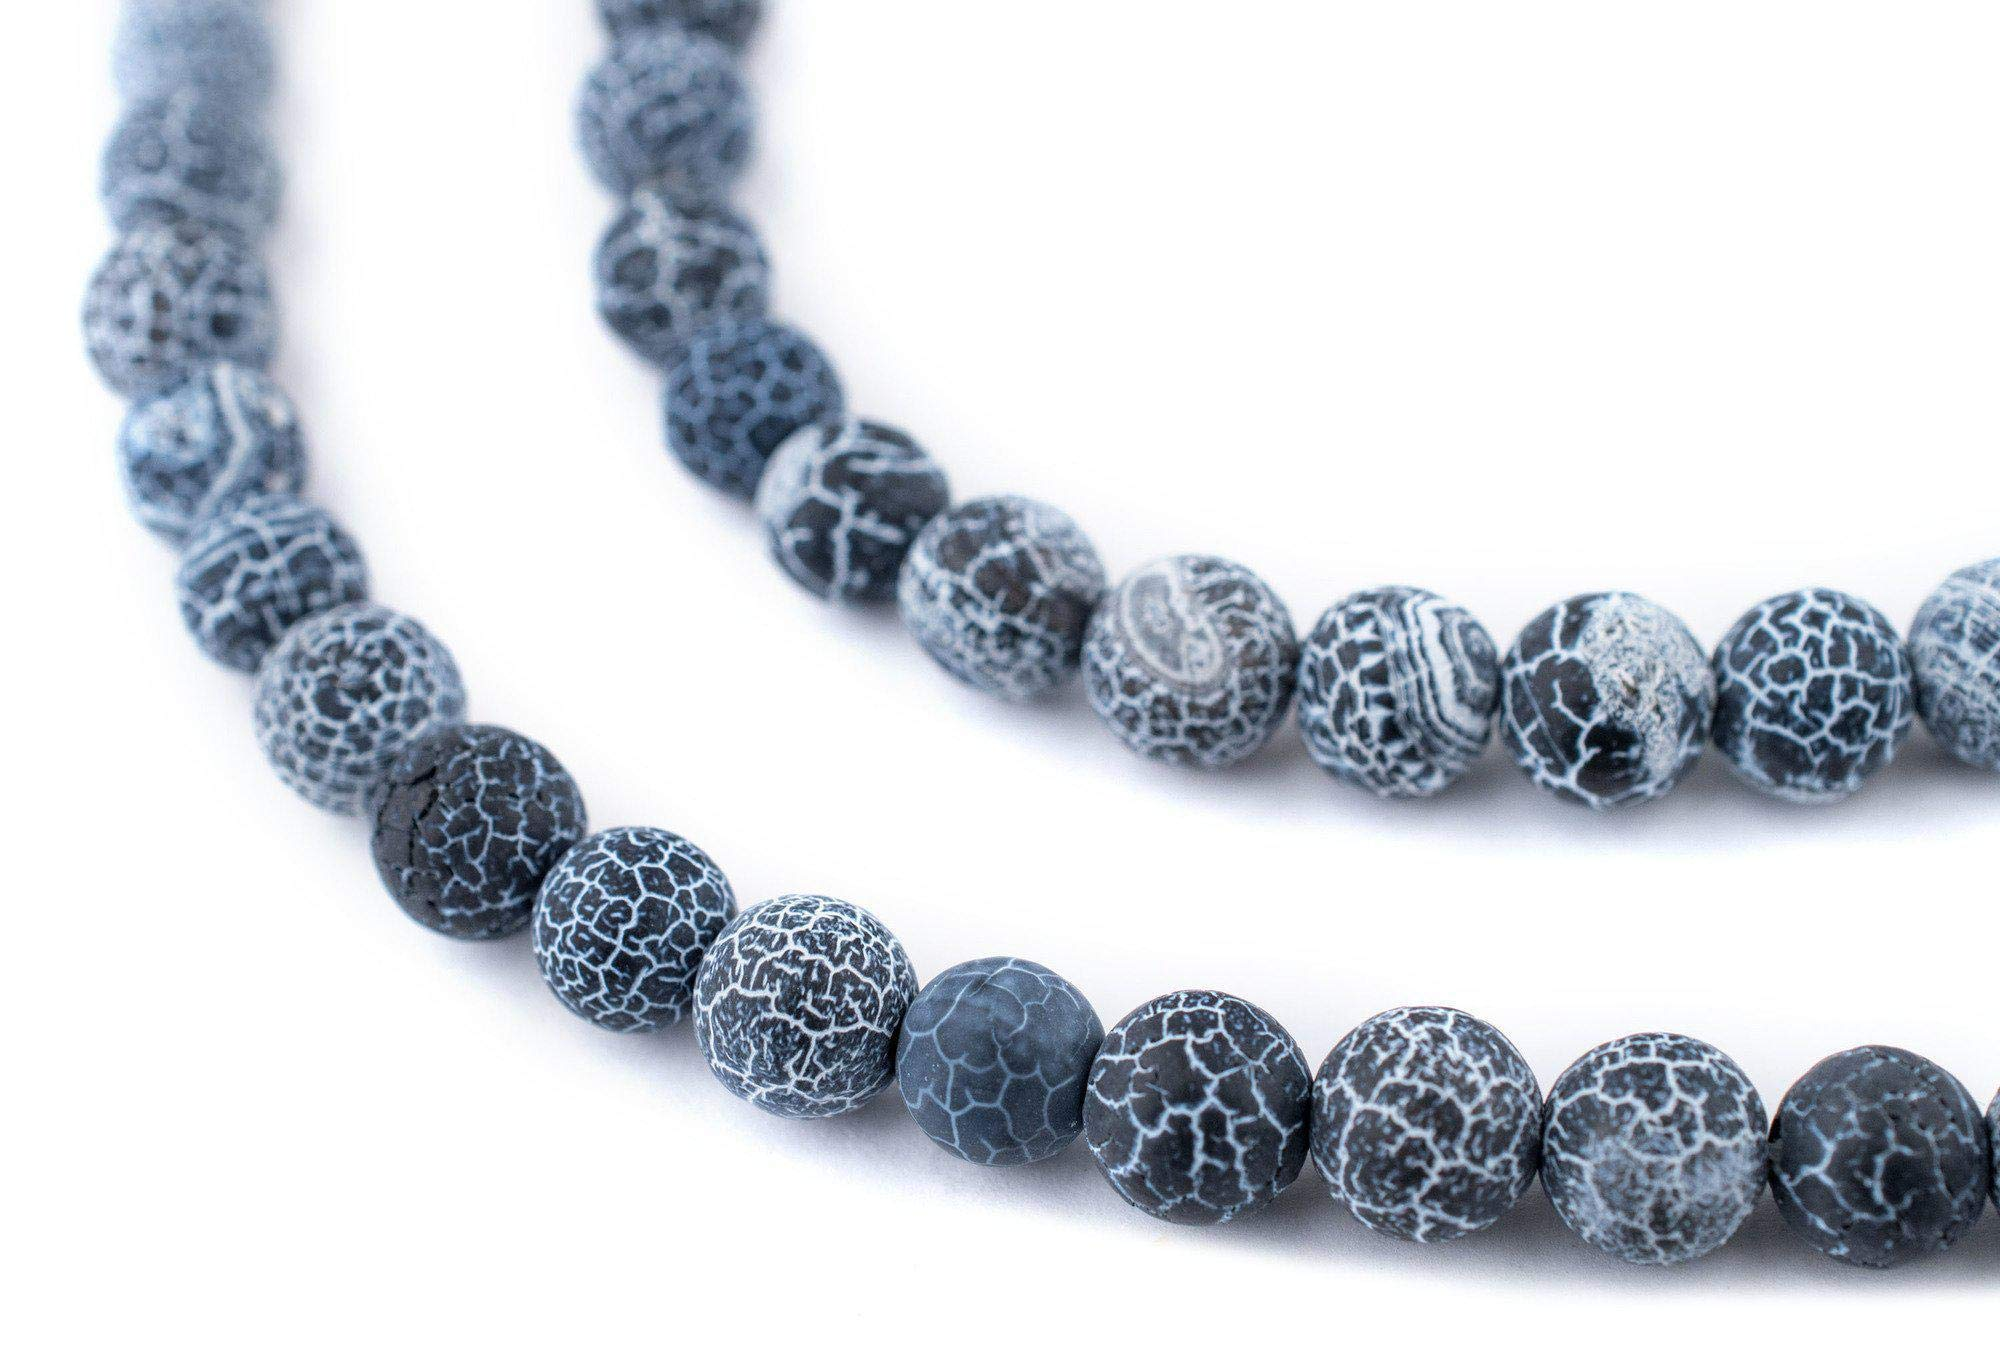 TheBeadChest Matte Round Black Crackled Agate Beads (8mm): Organic Gemstone Round Spherical Energy Stone Healing Power for Jewelry Bracelet Mala Necklace Making